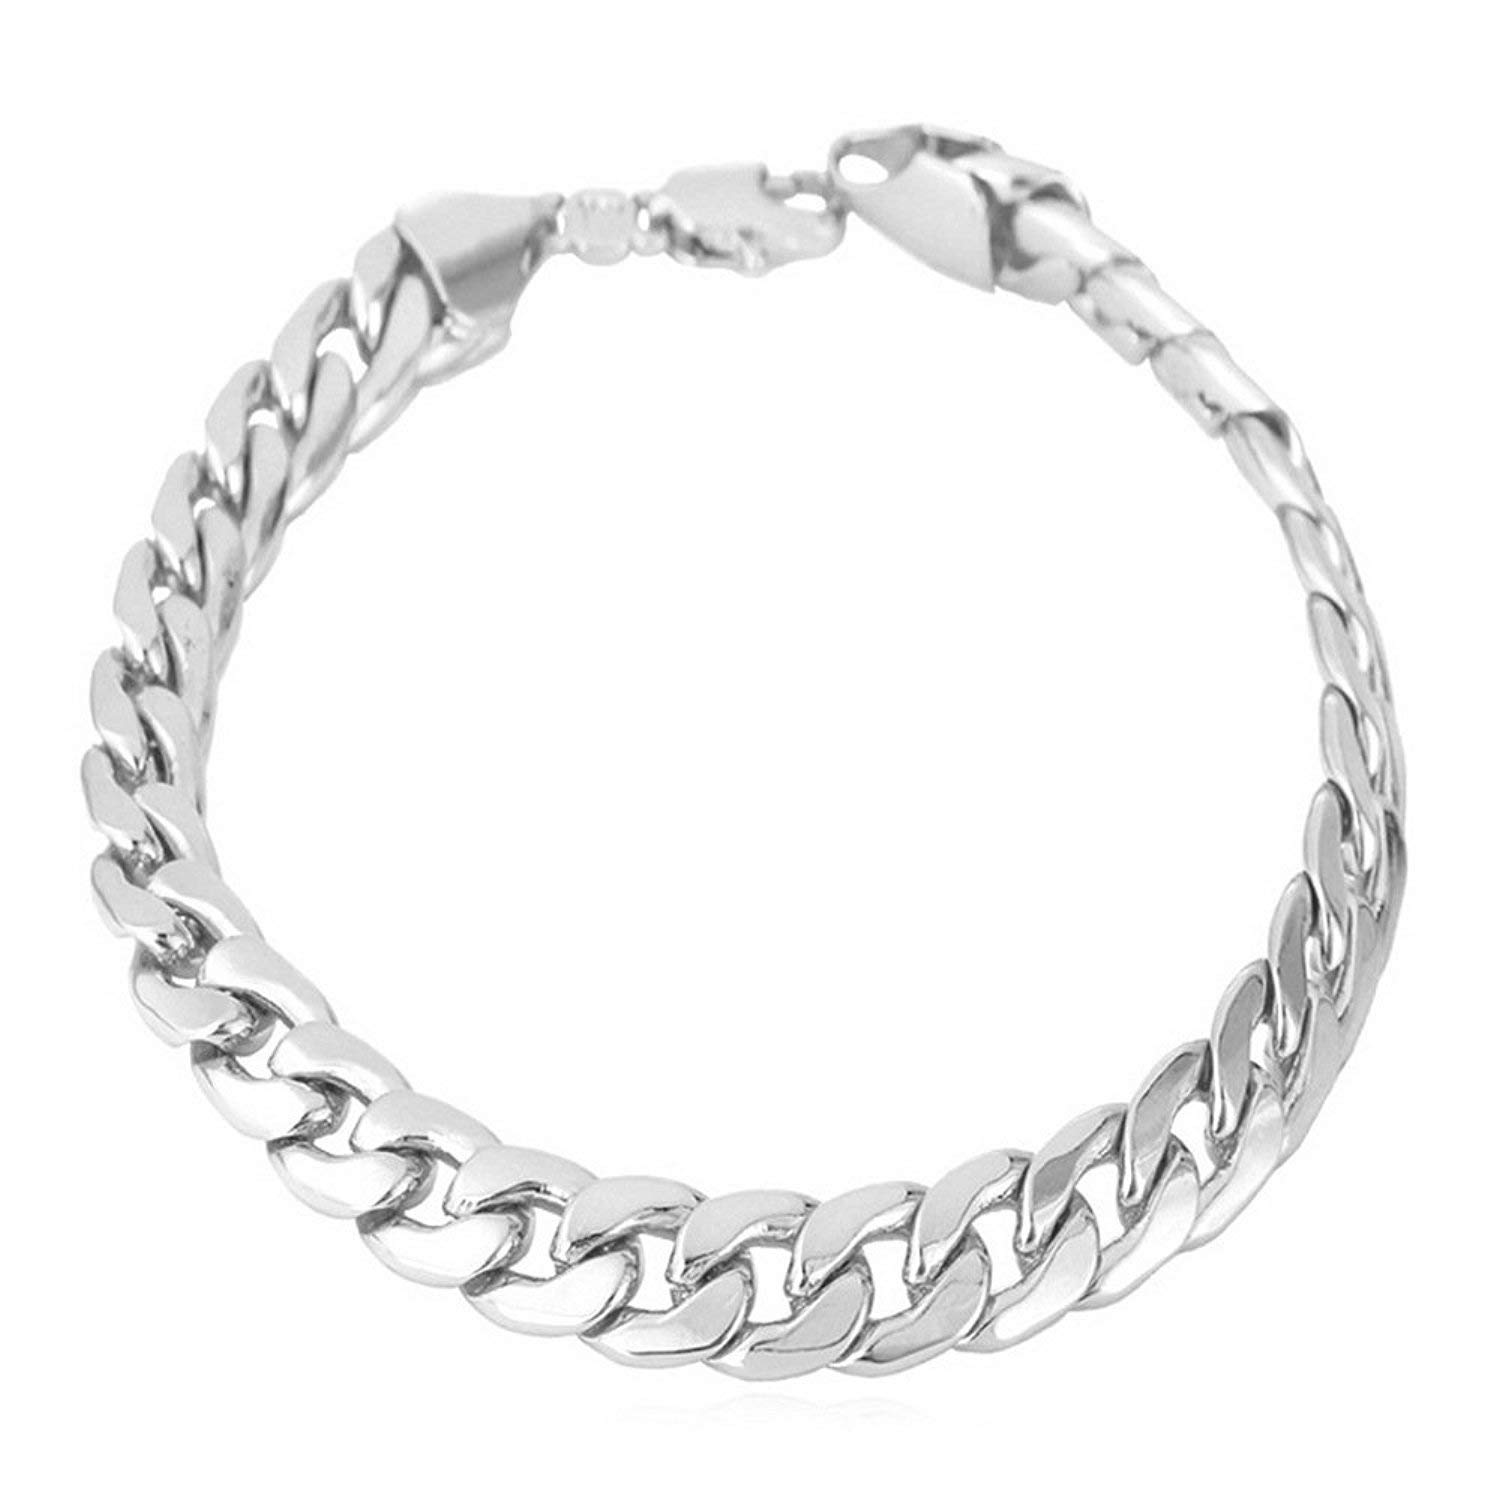 Moneekar Jewels 6mm Wide Curb Chain Bracelet for Men